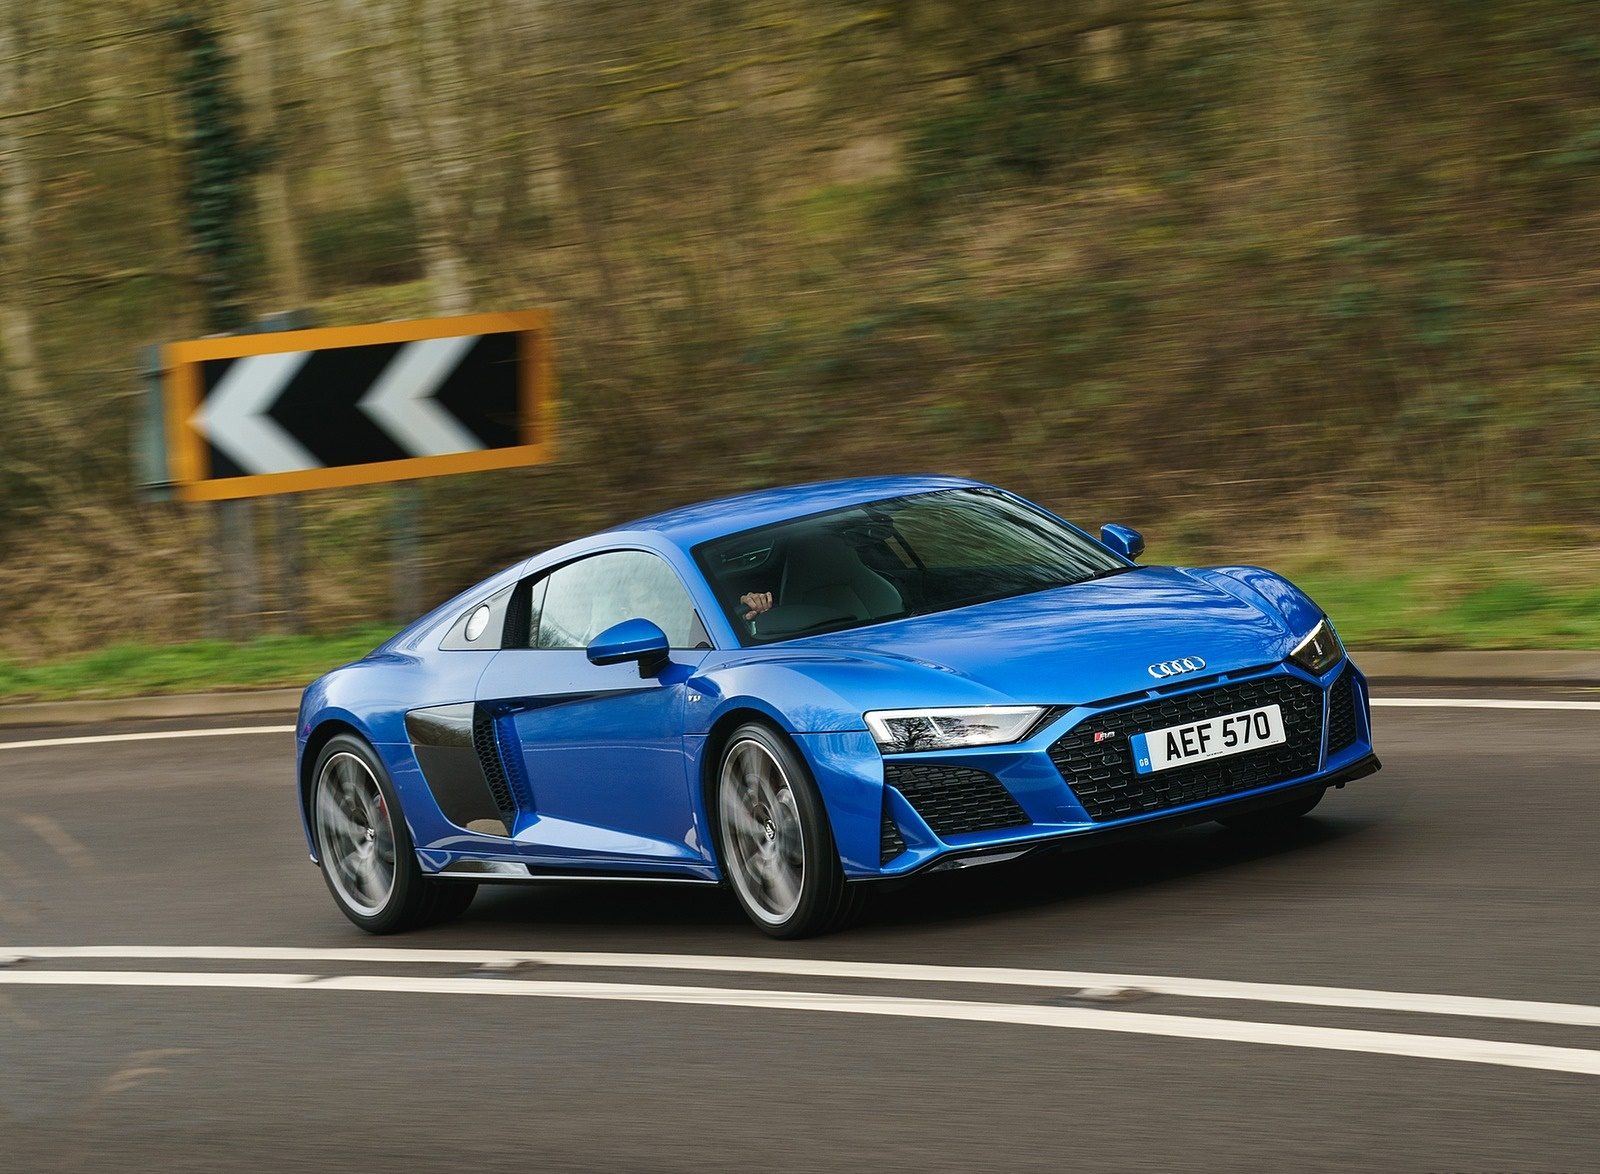 2019 Audi R8 V10 Coupe quattro (UK-Spec) Front Three-Quarter Wallpaper (2)